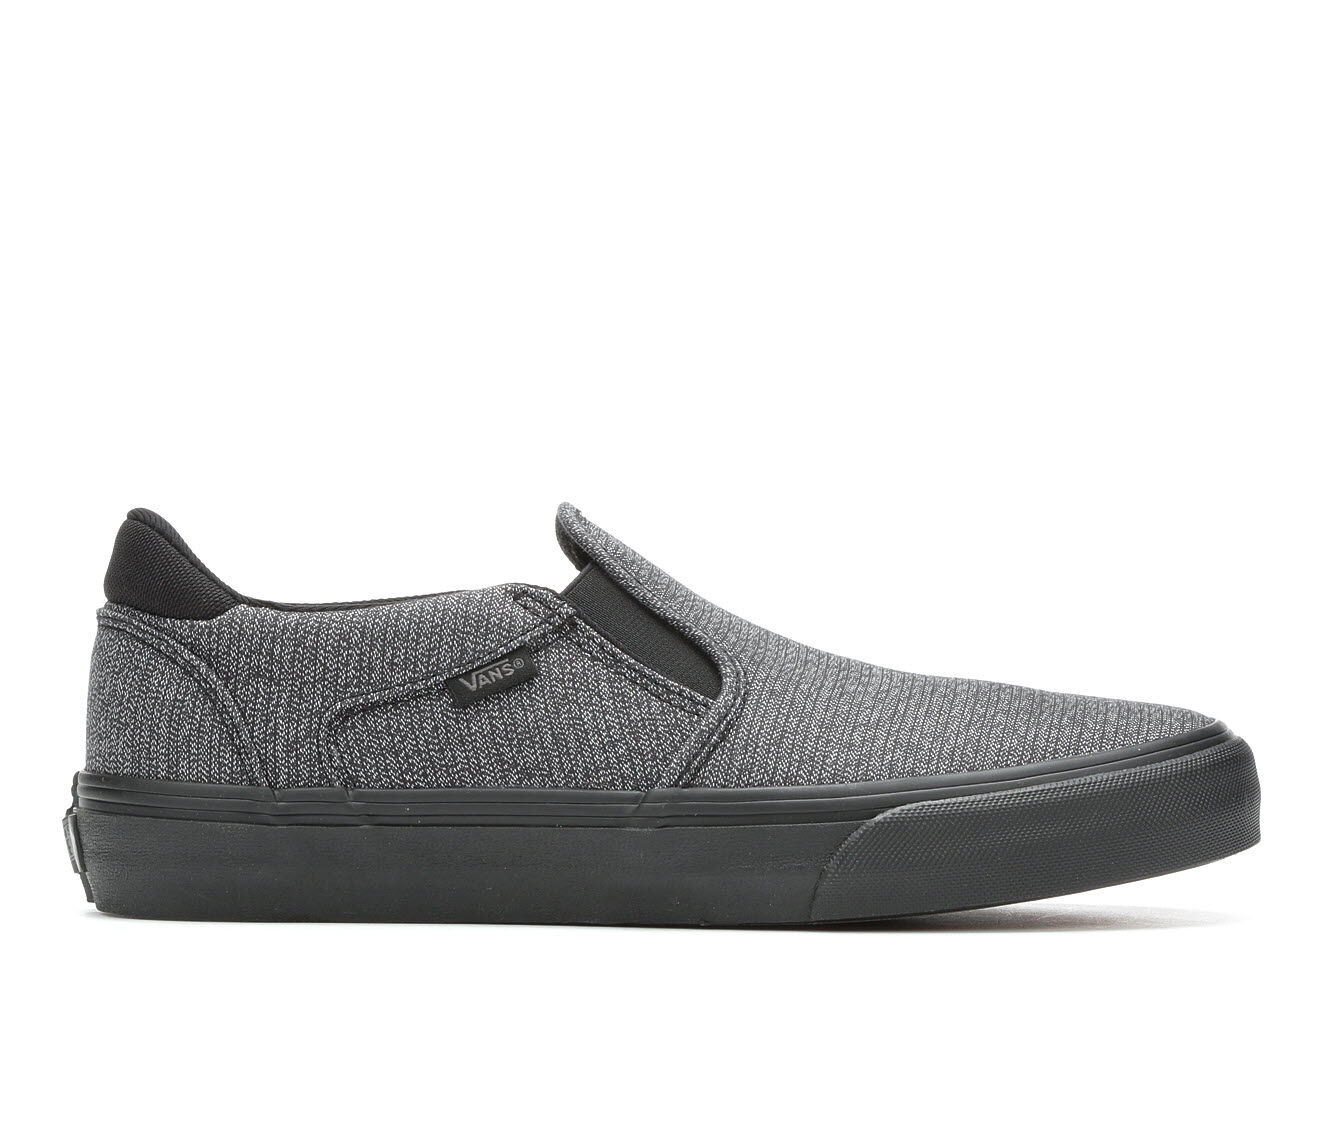 purchase new style Men's Vans Asher-Deluxe Skate Shoes Gry/Blk Textile